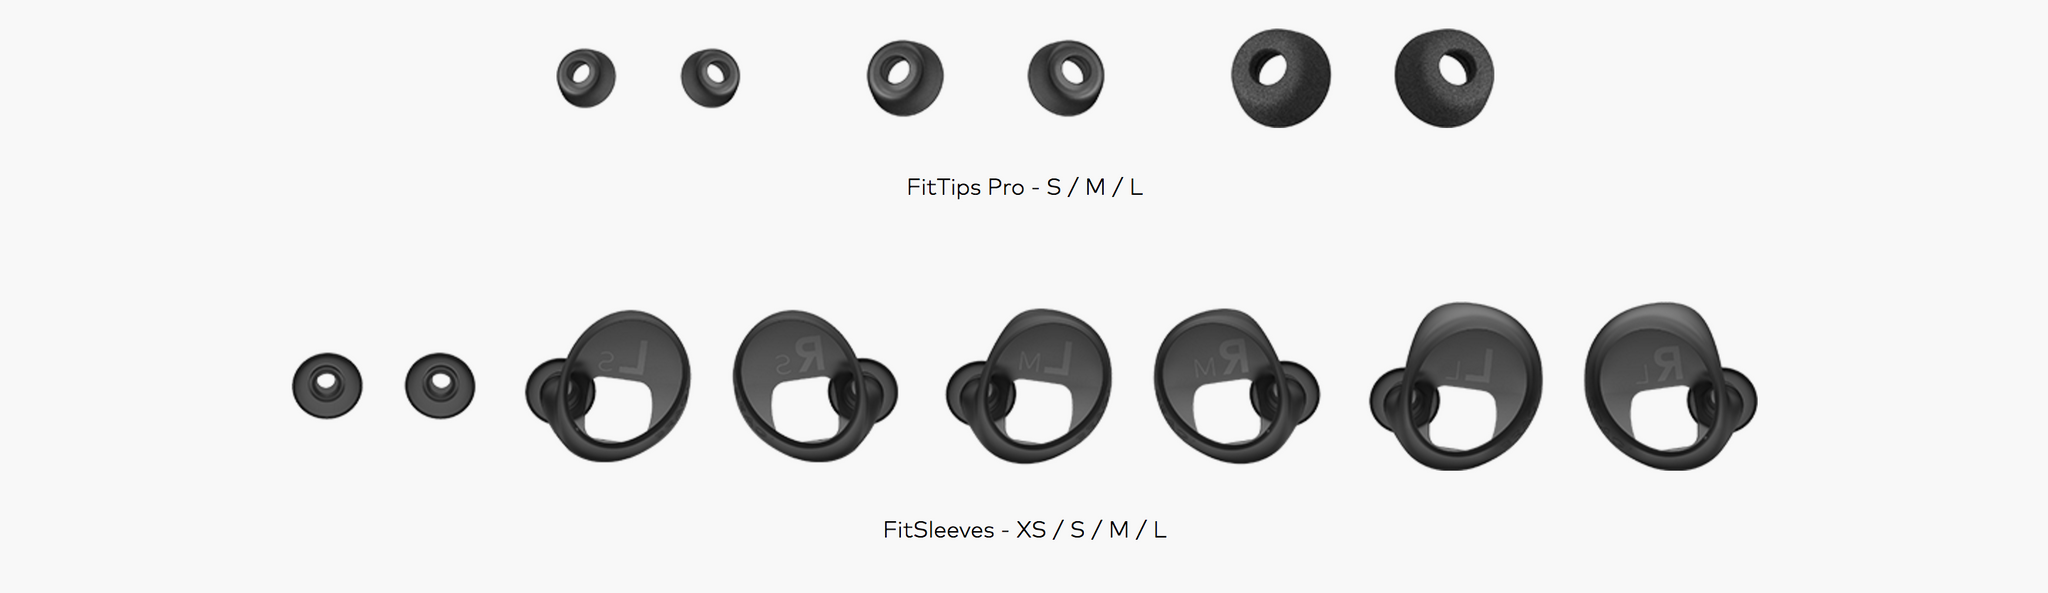 Bragi Dash Pro Ear Sleeves Description